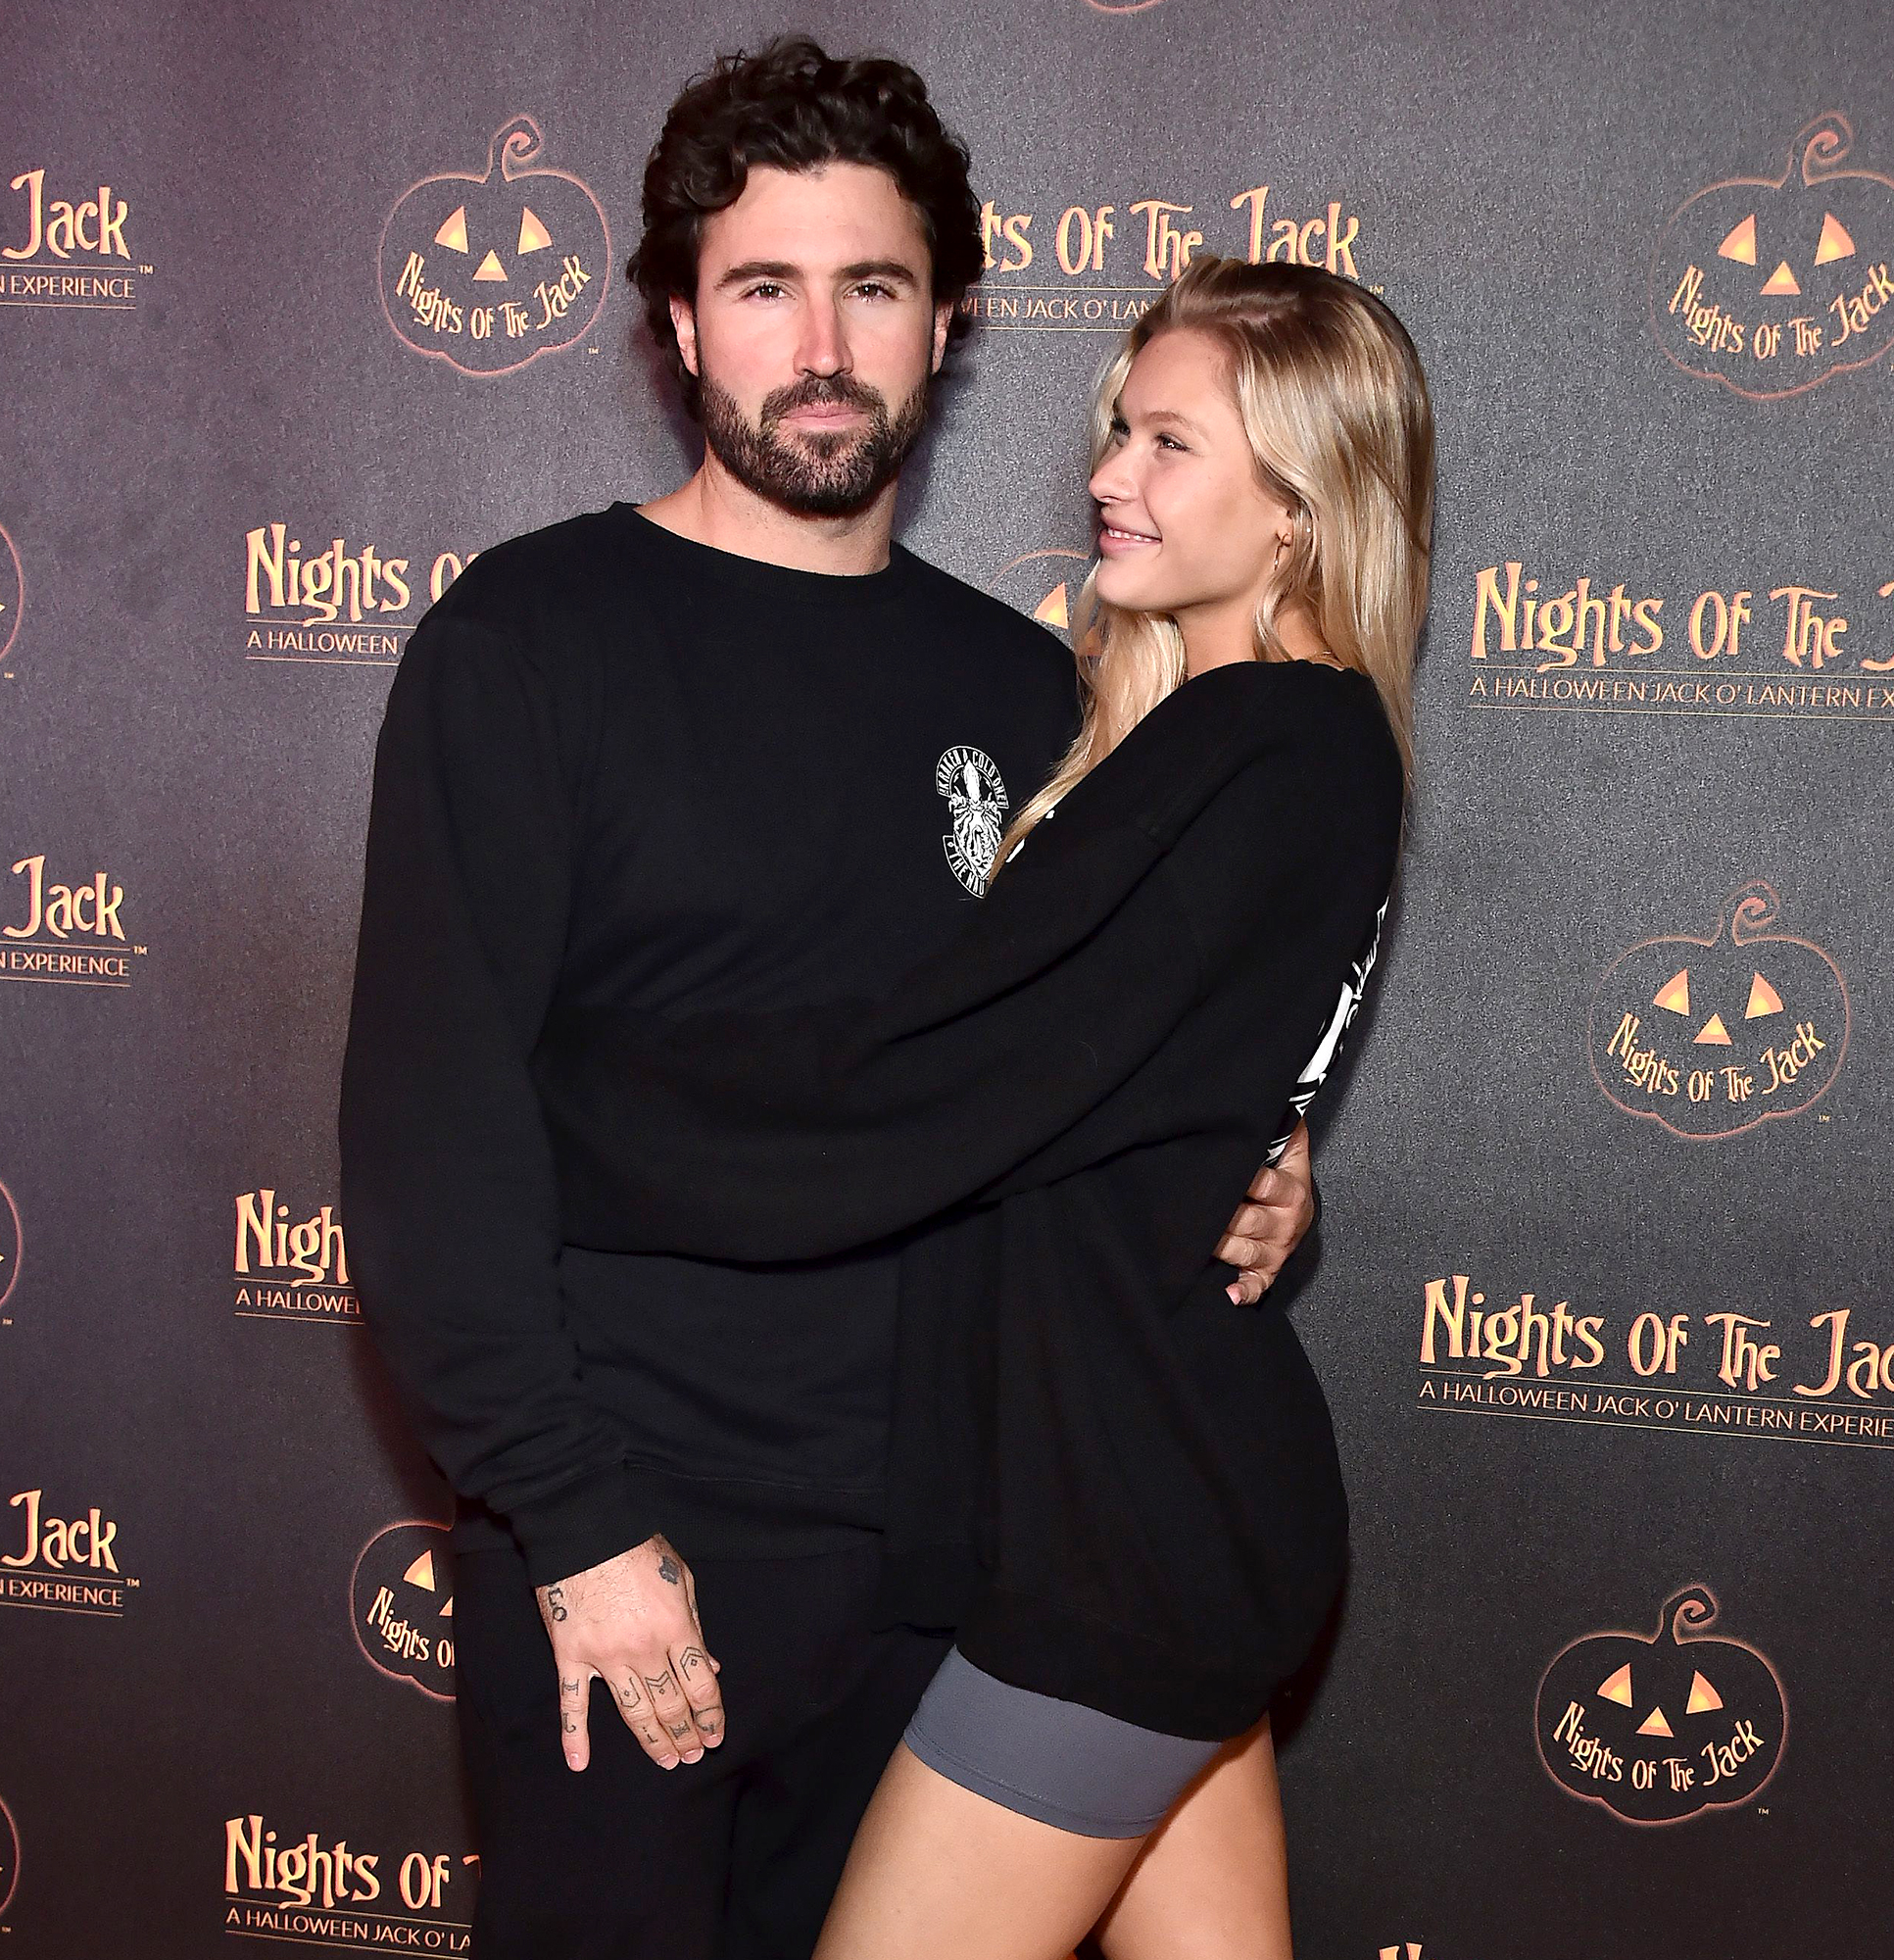 Josie-Canseco-Is-Dating-Logan-Paul-After-Her-Split-From-Brody-Jenner